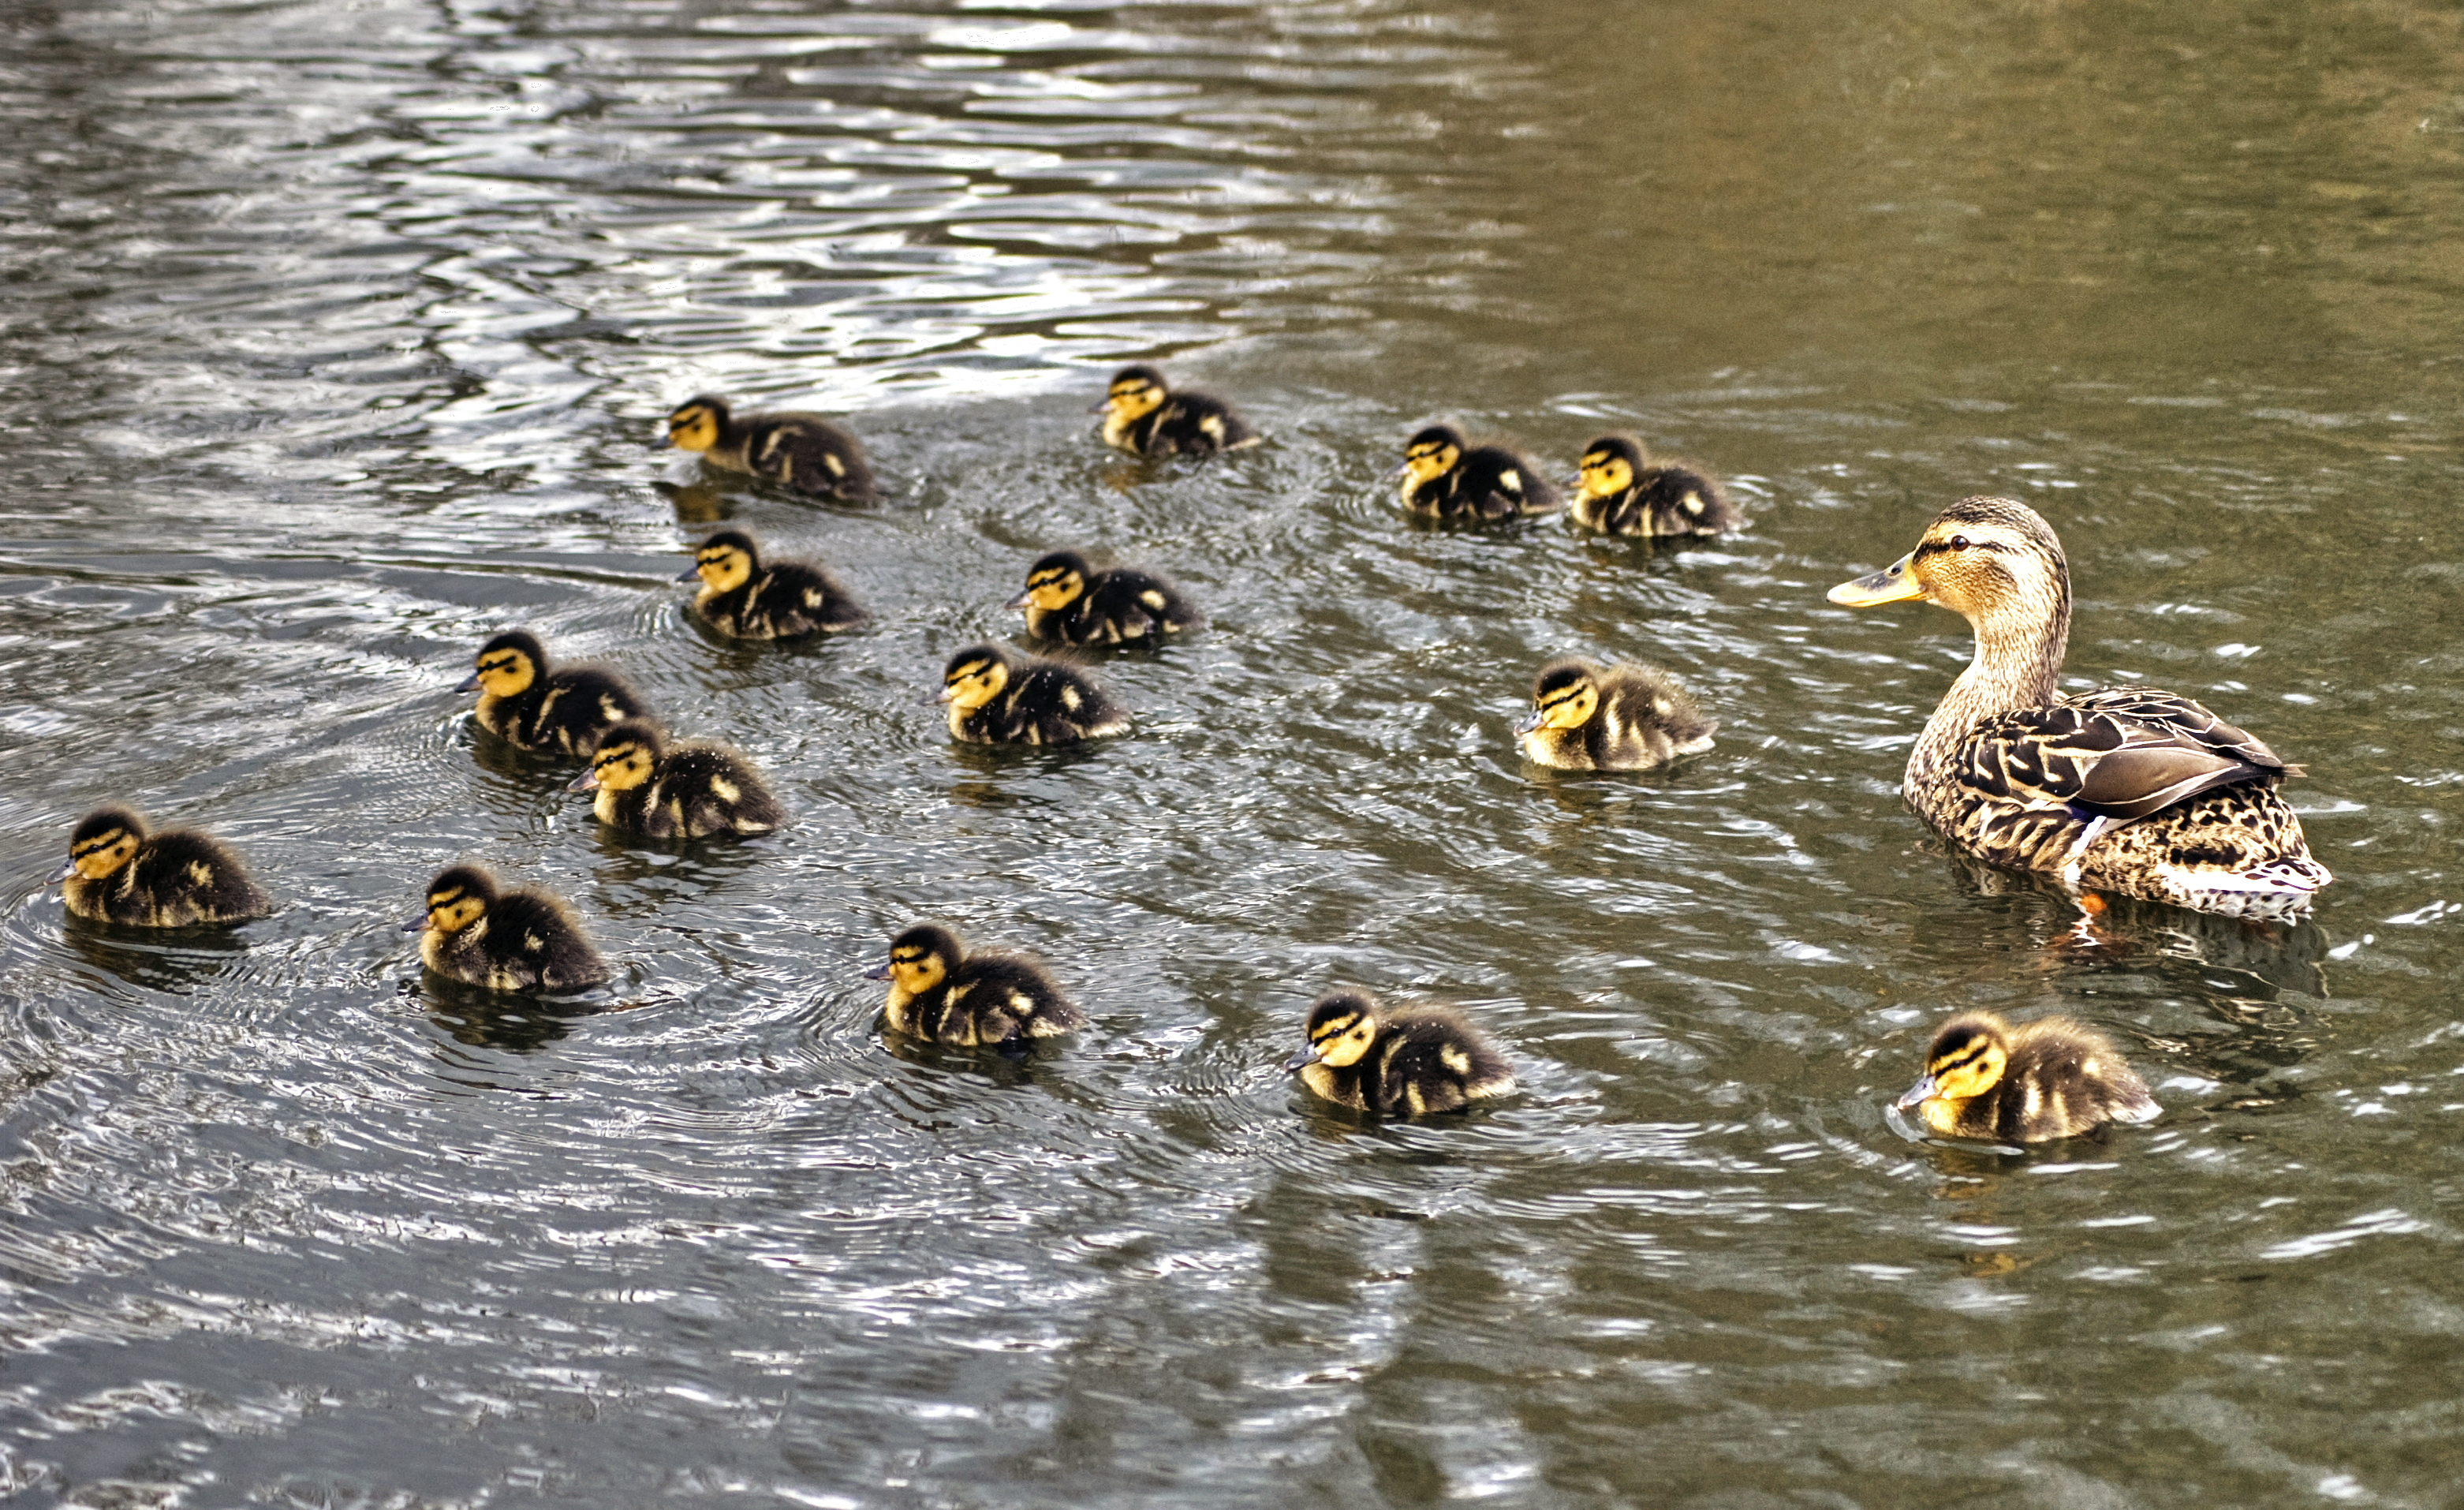 Leader: Duck with ducklings